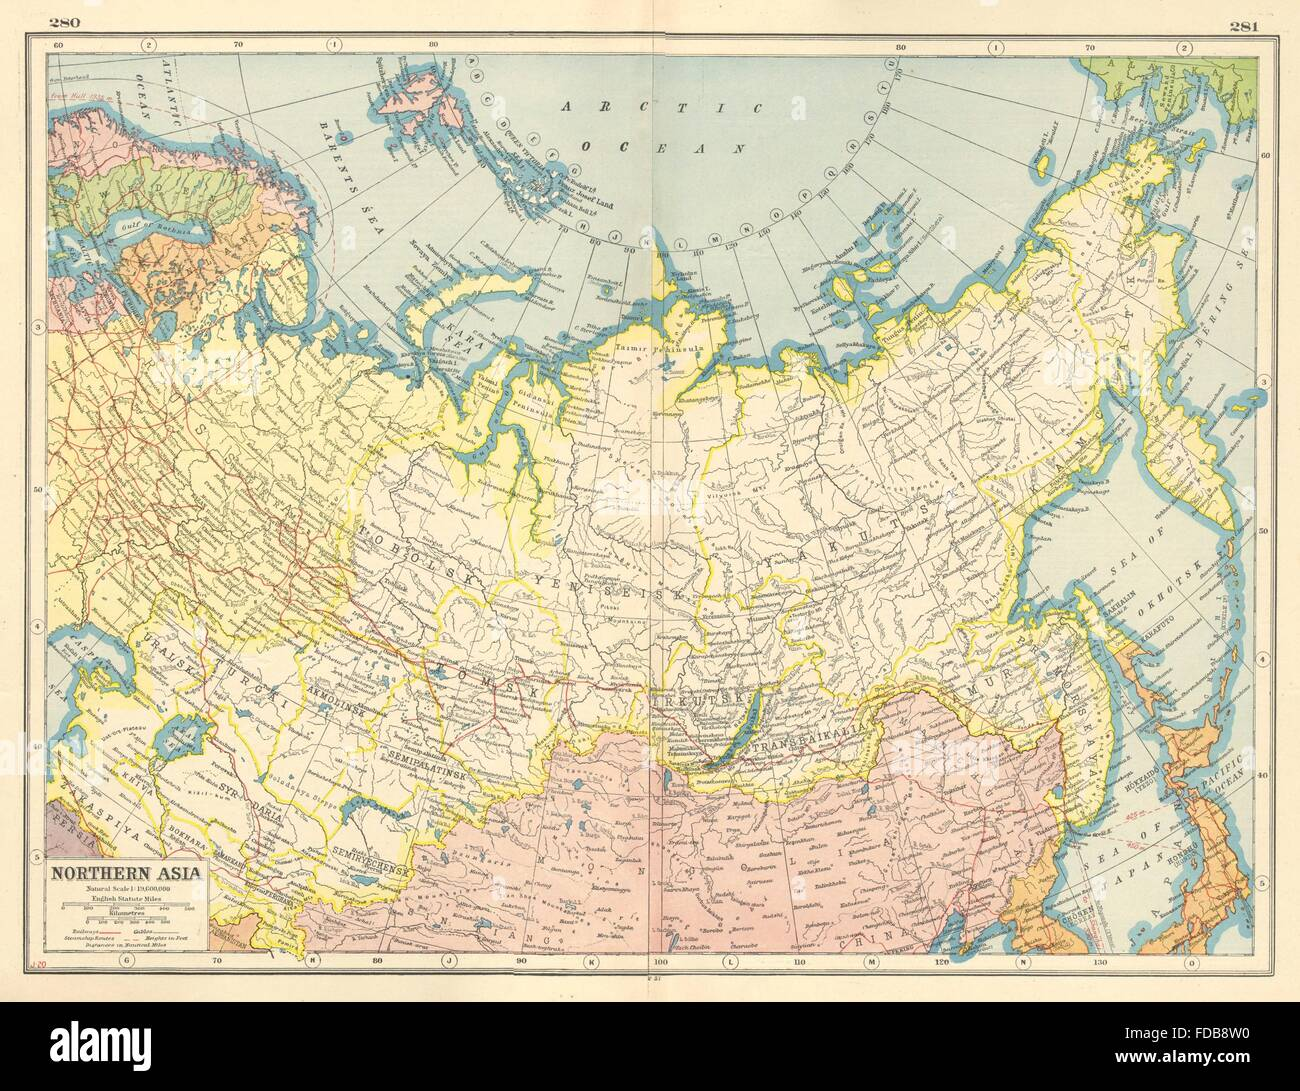 Where Is Siberia On A World Map.Russia Northern Asia Siberia Mongolia Arctic Ocean Harmsworth